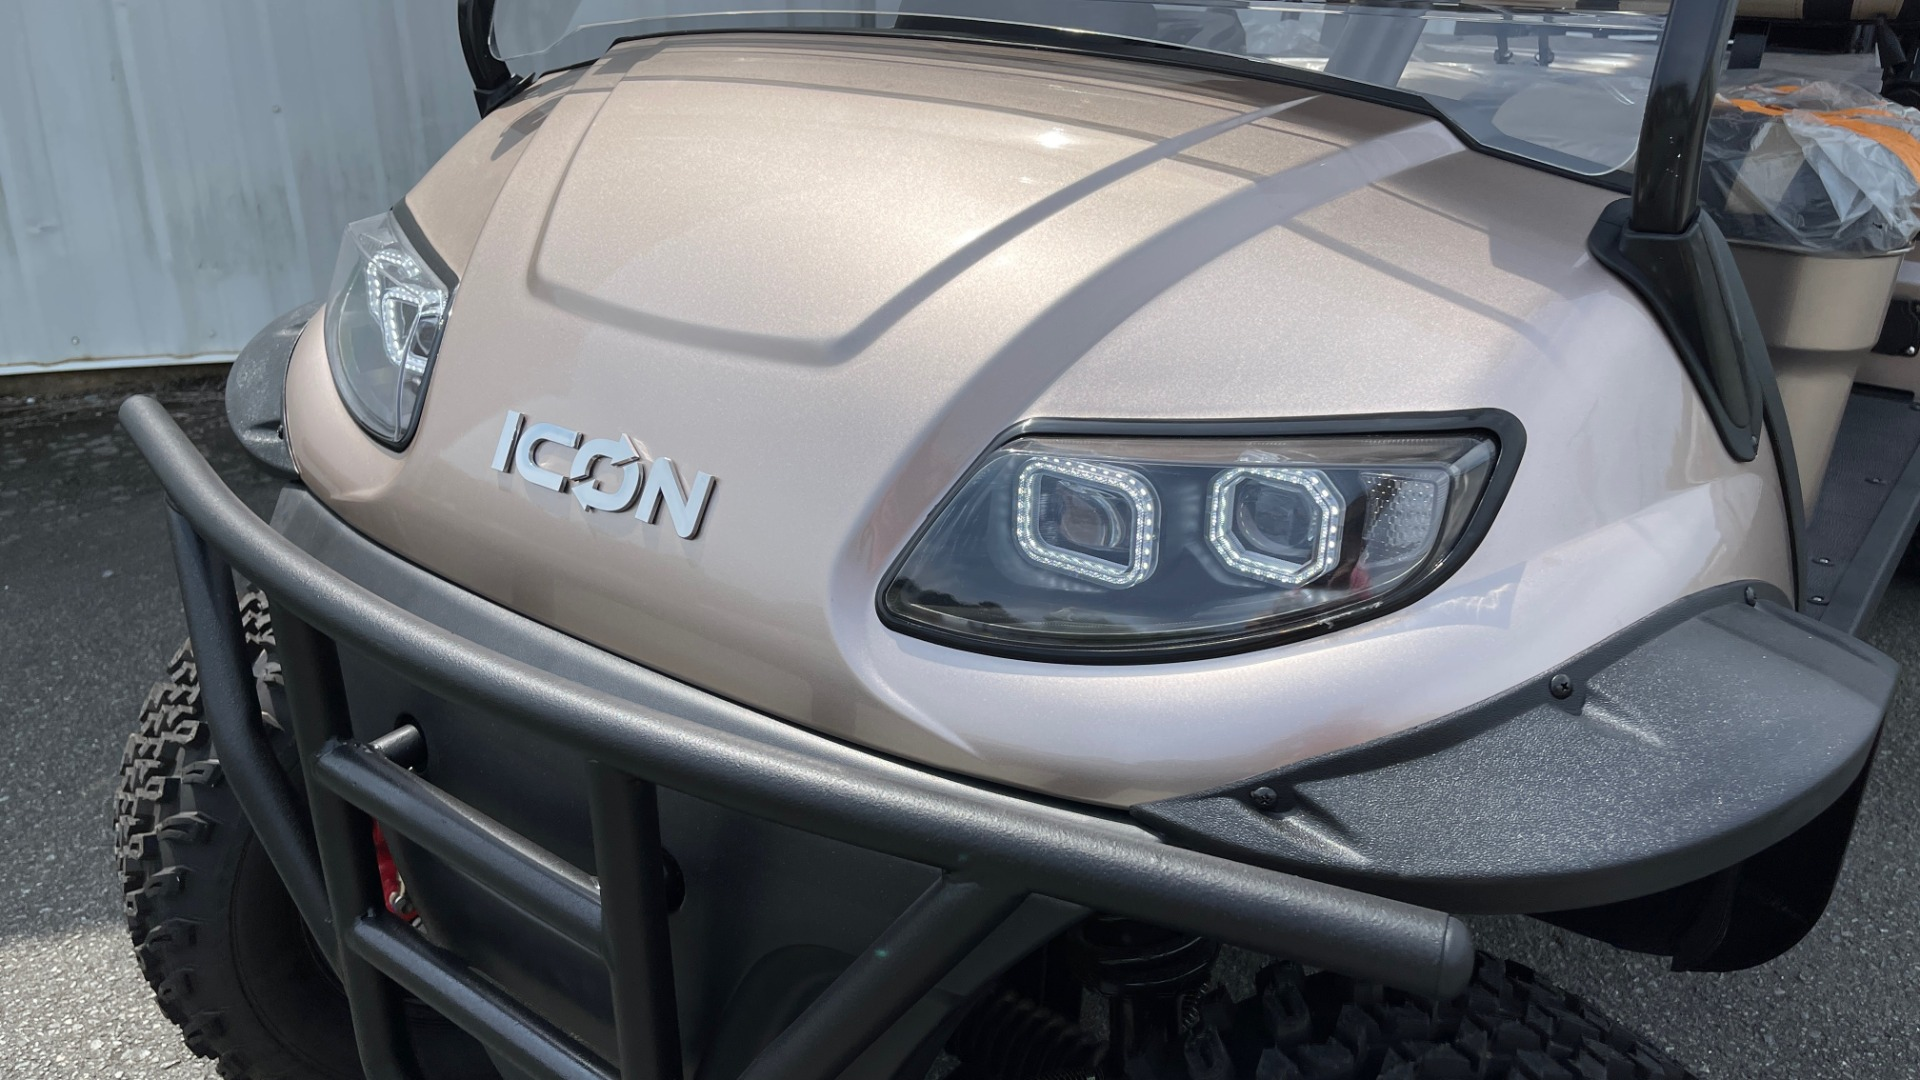 Used 2021 ICON I60L LIFTED ELECTRIC CAR / 6-PASSENGER GOLF CART / 25MPH / NEW / 1-MILE for sale $11,399 at Formula Imports in Charlotte NC 28227 34